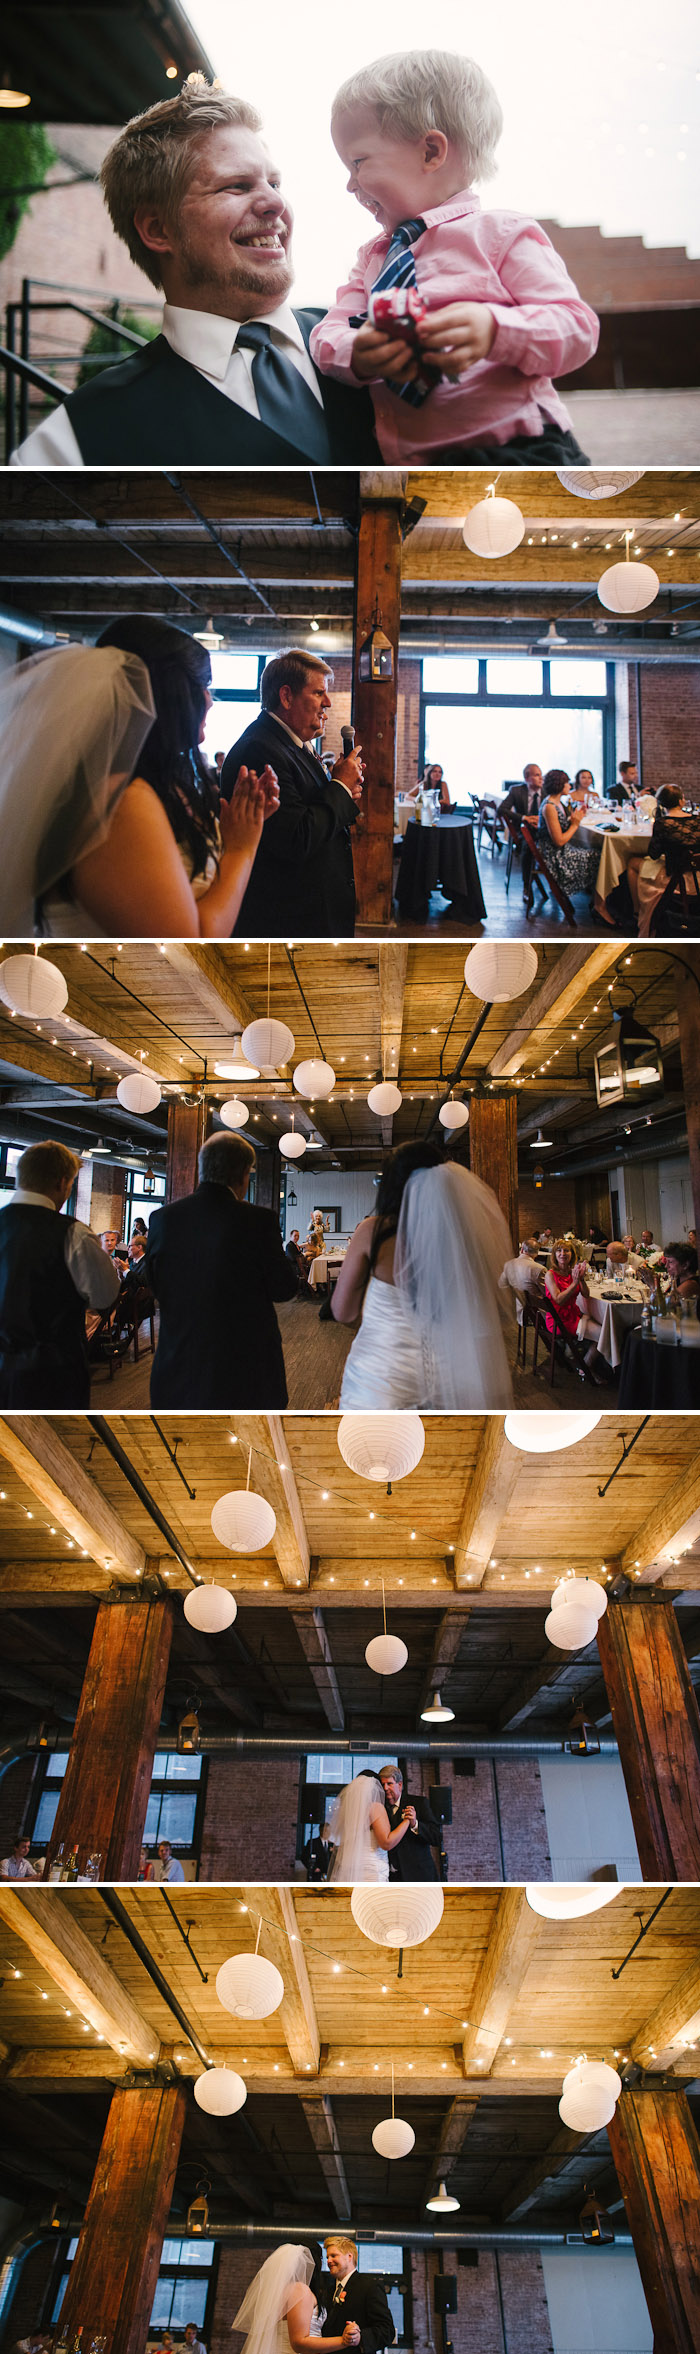 Beautiful wedding reception at the Hobbs Building in Kansas City.